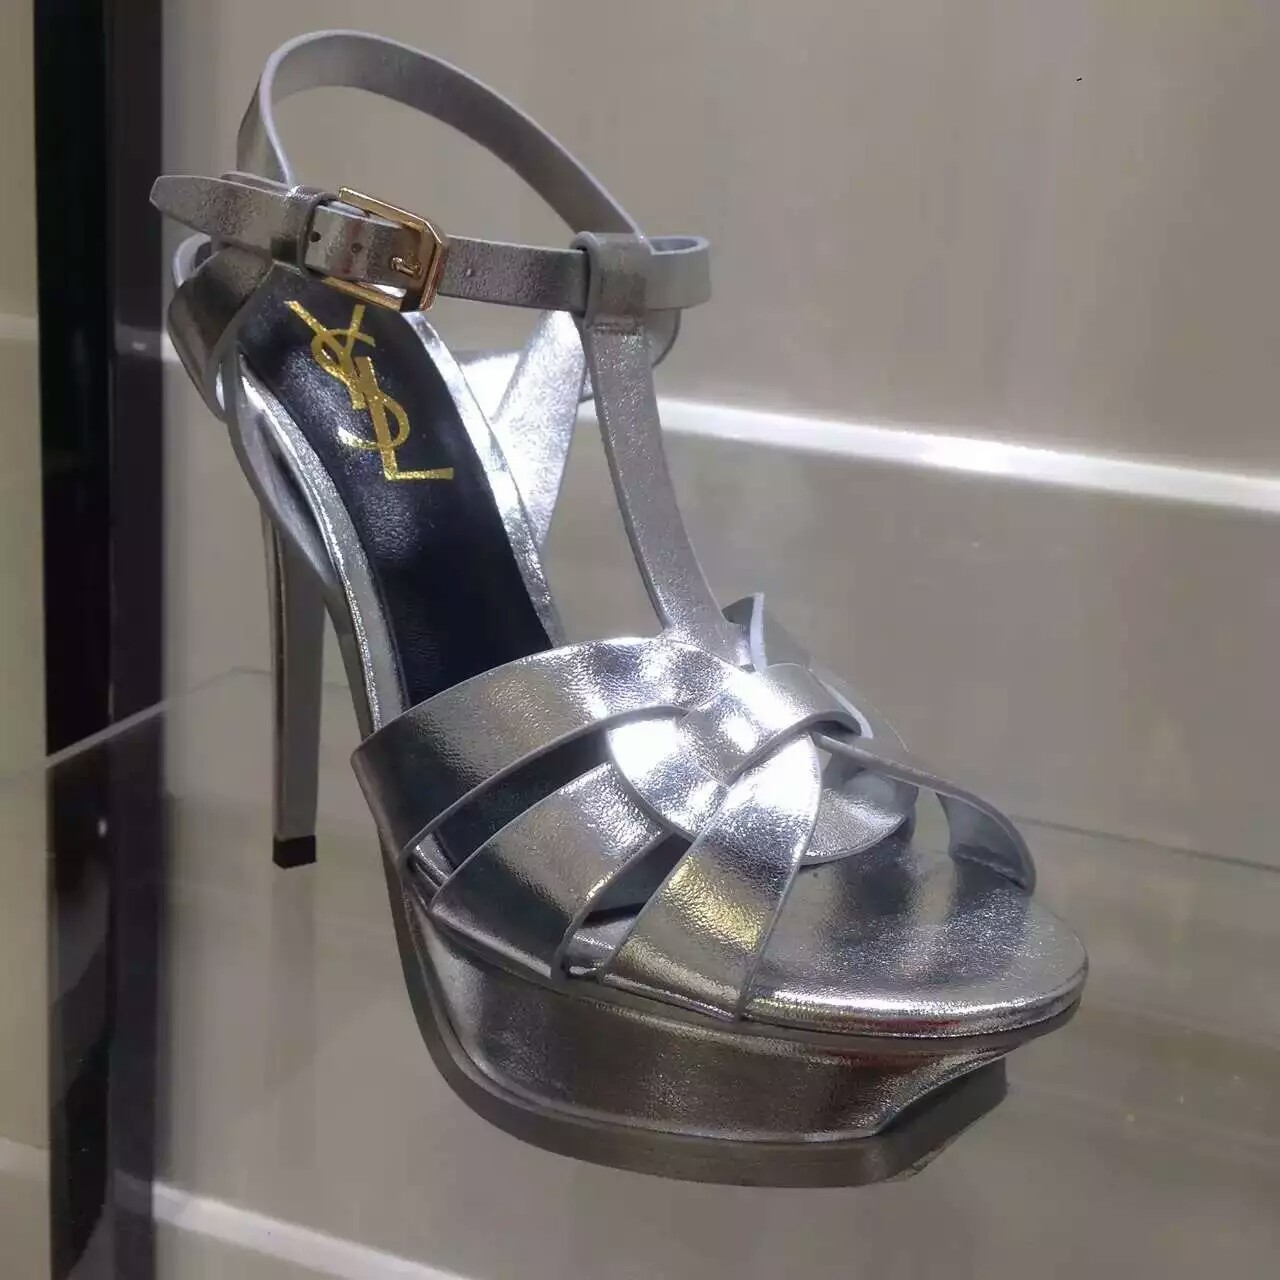 2016 Saint Laurent Shoes Cheap Sale-Saint Laurent Jodie 105 Strappy Sandal in Silver Metallic Leather